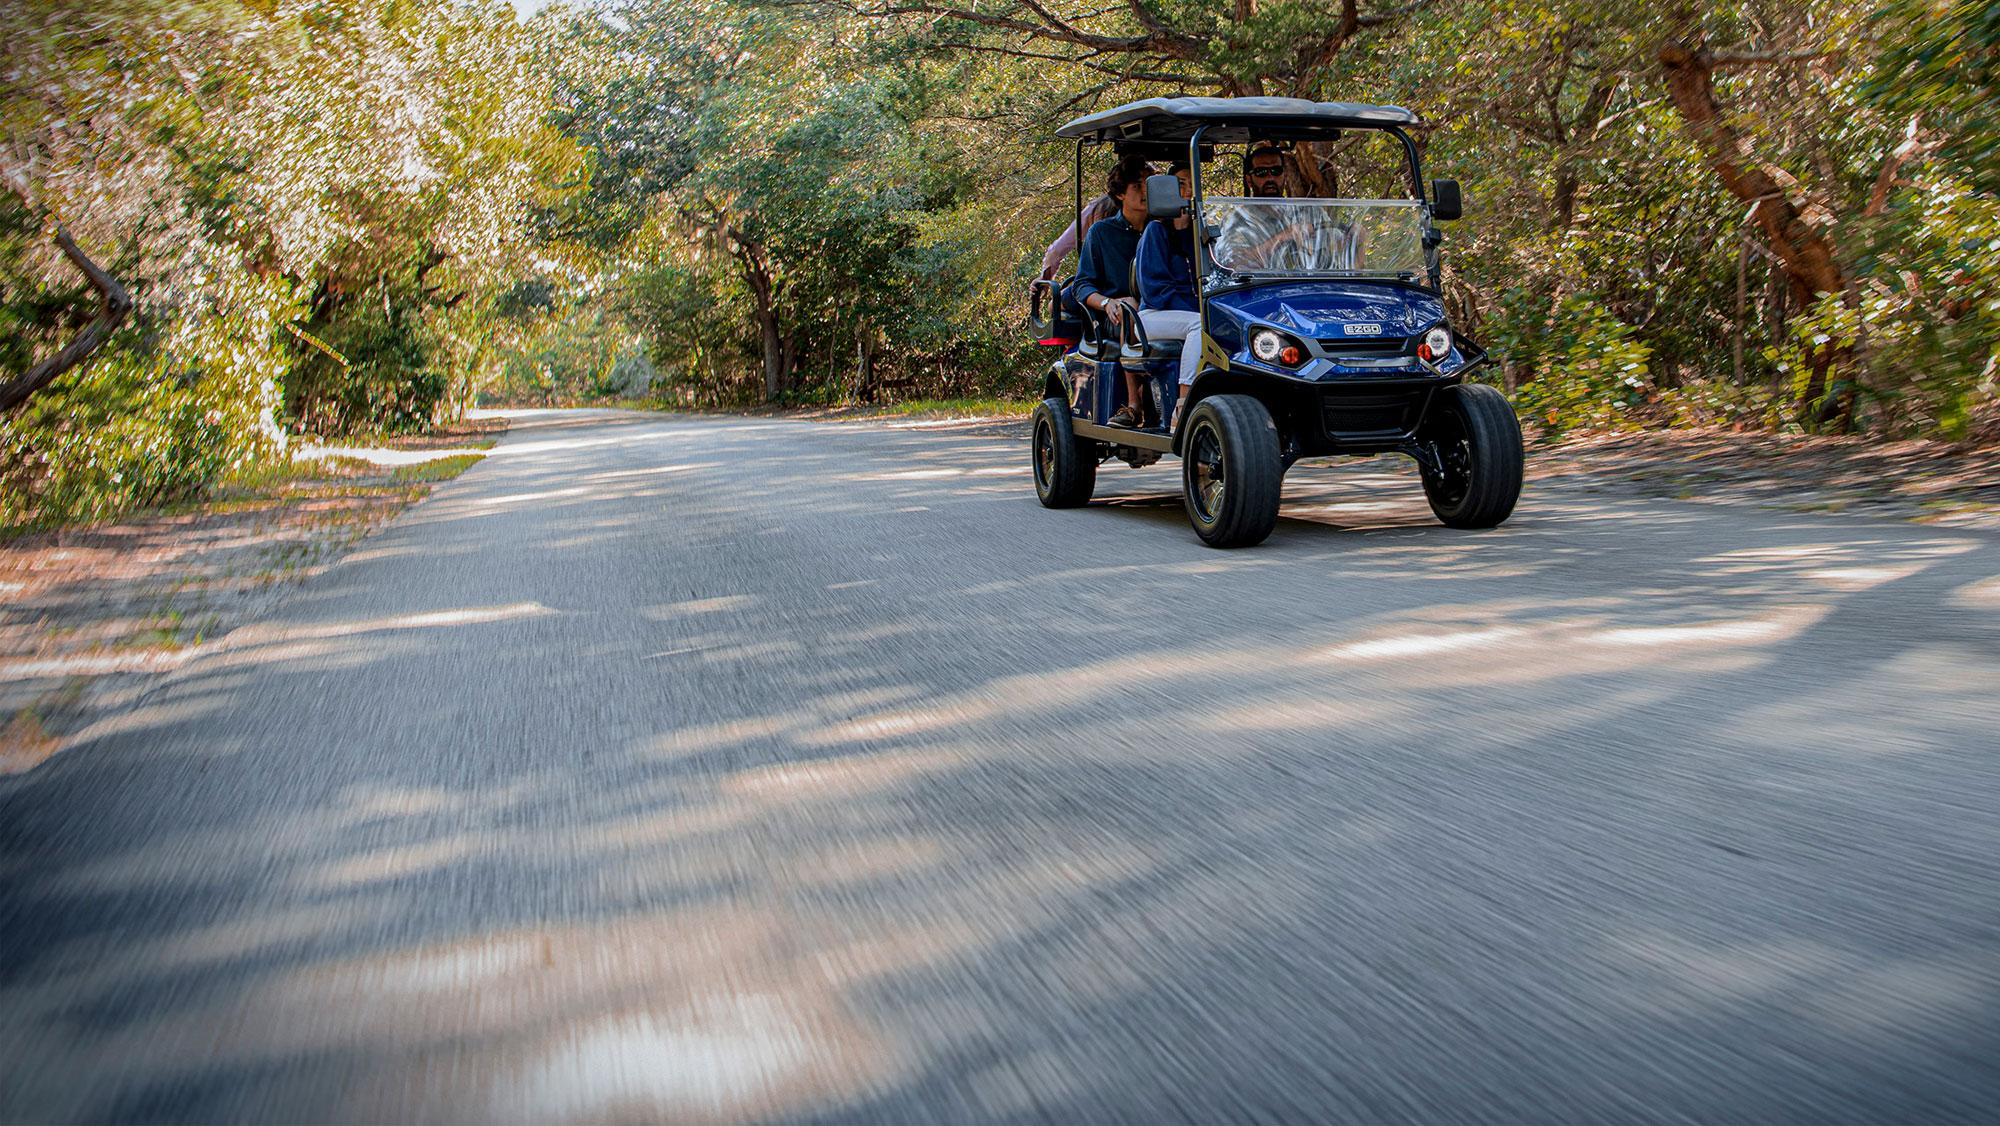 Express L6 Personal Golf Cart with Windshield and Top Accessory